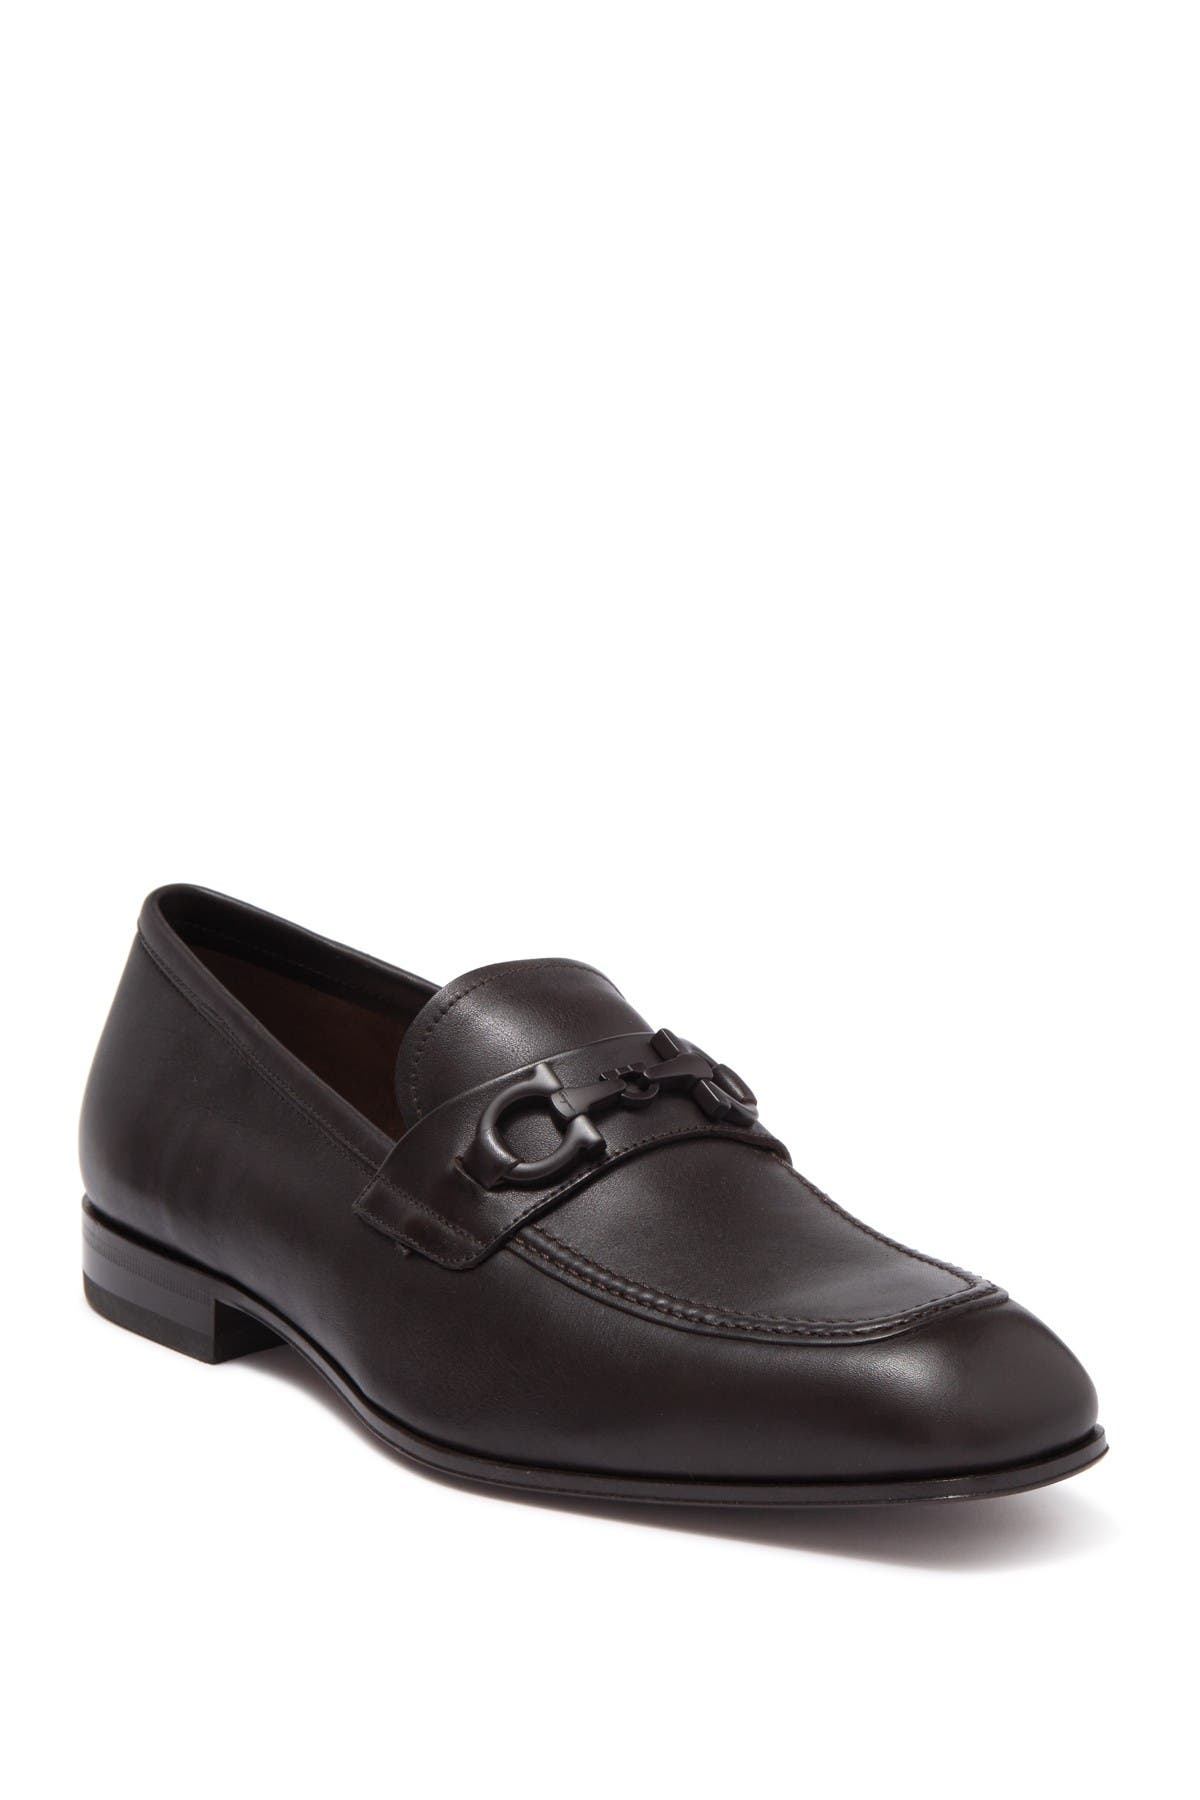 Image of Salvatore Ferragamo Horsebit Leather Loafer